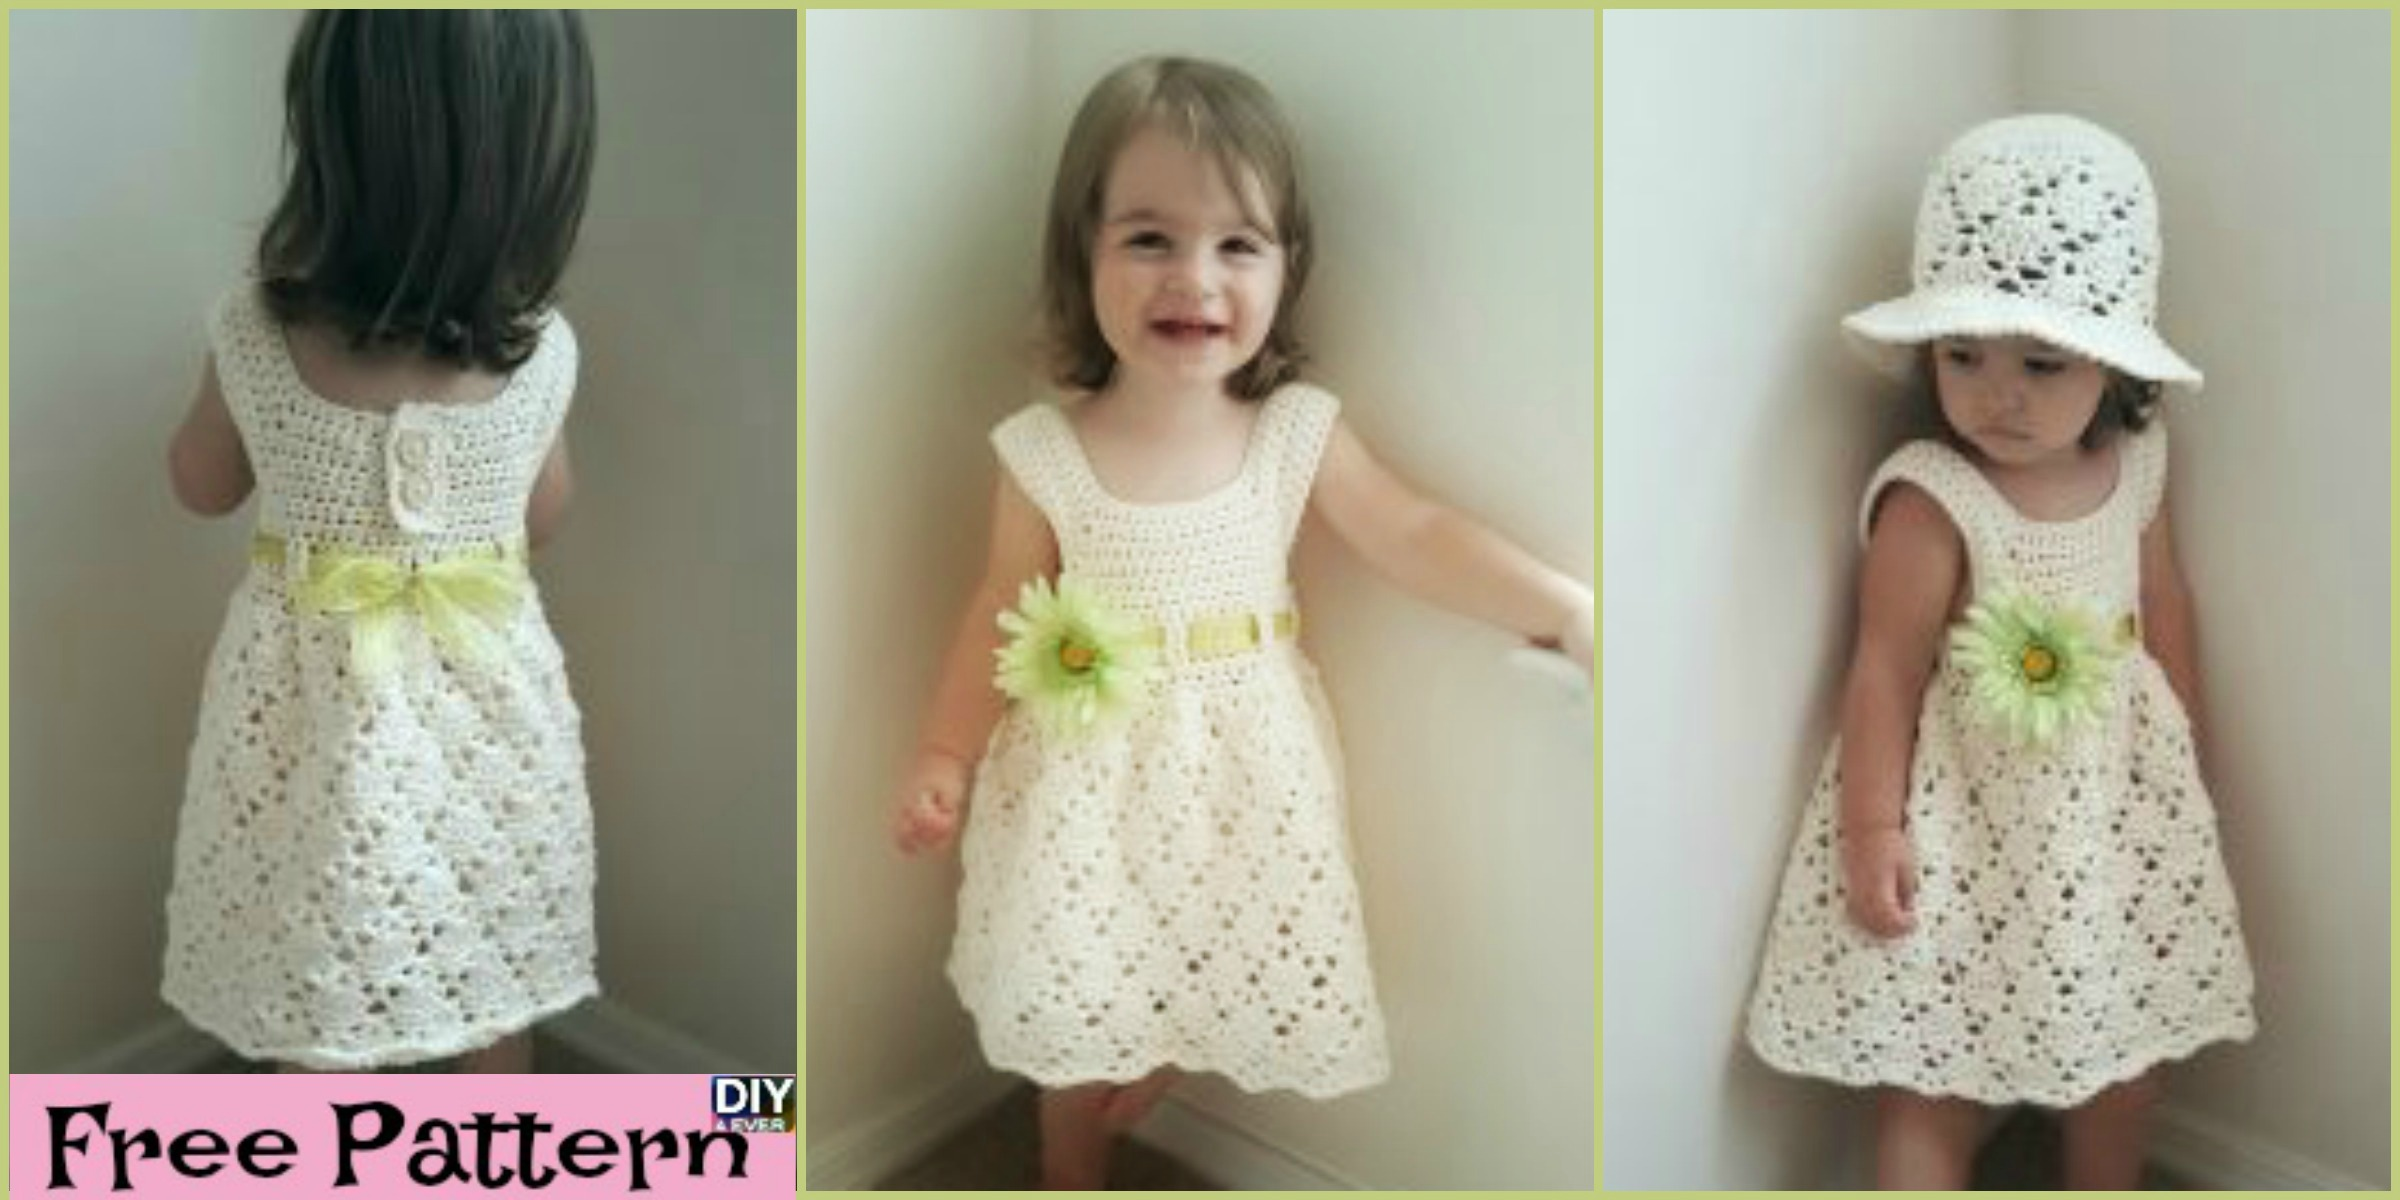 Crochet Vintage Toddler Dress - Free Pattern - DIY 4 EVER